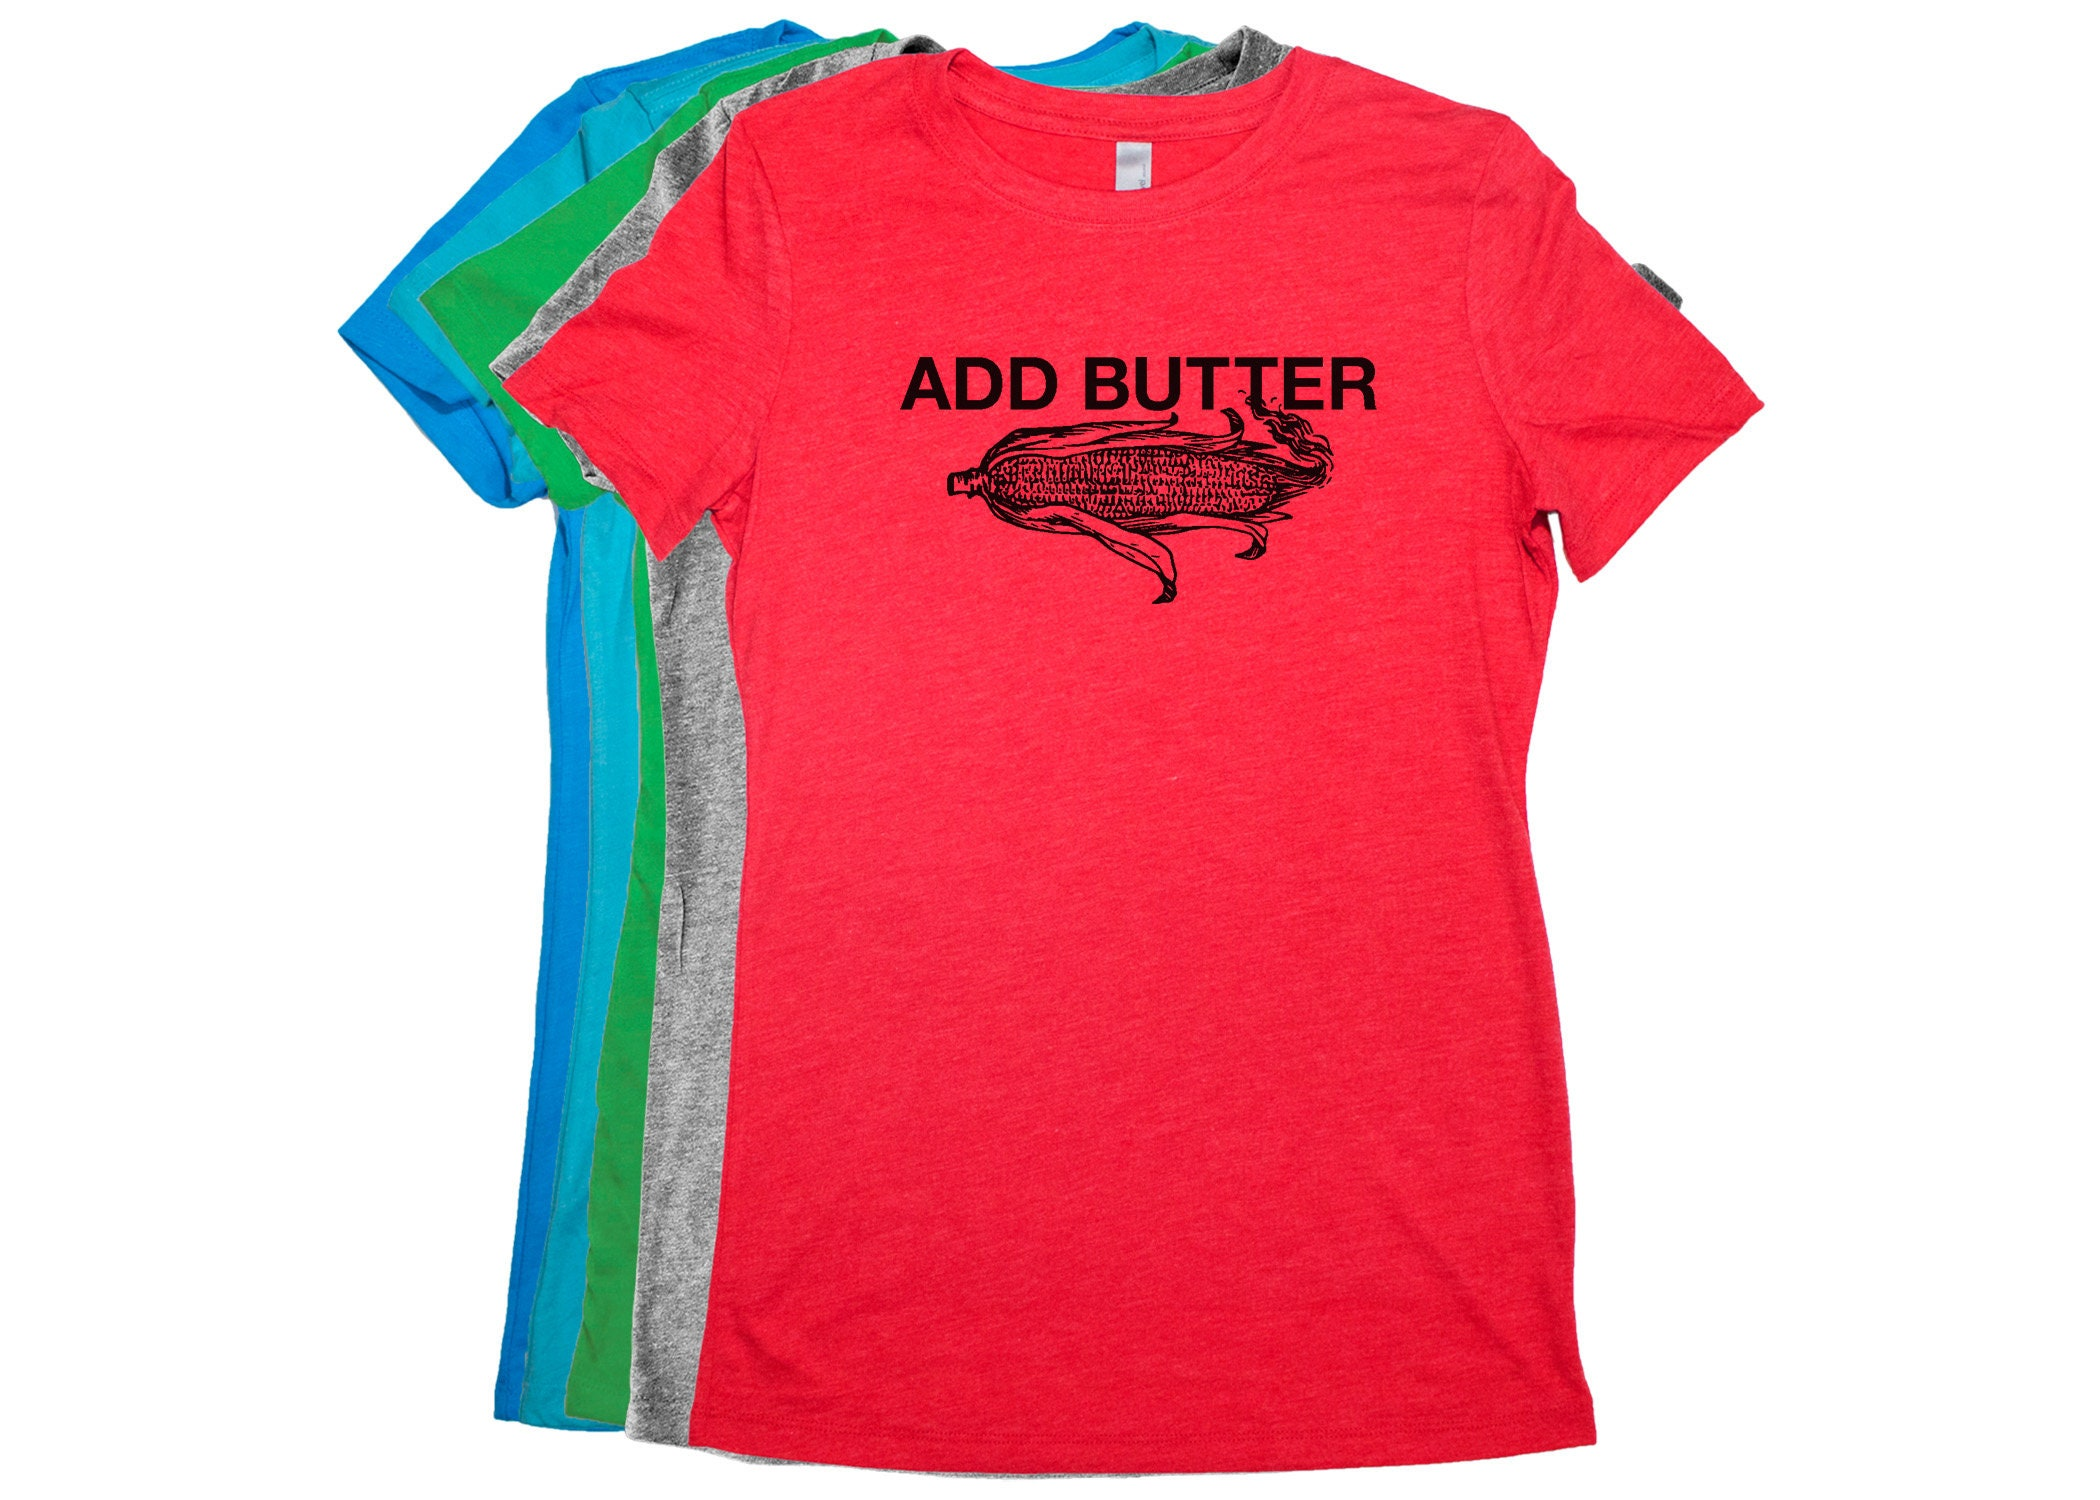 d5cd498d0c5 Food Lover Clothing ADD BUTTER Food Shirt for Women Food T | Etsy